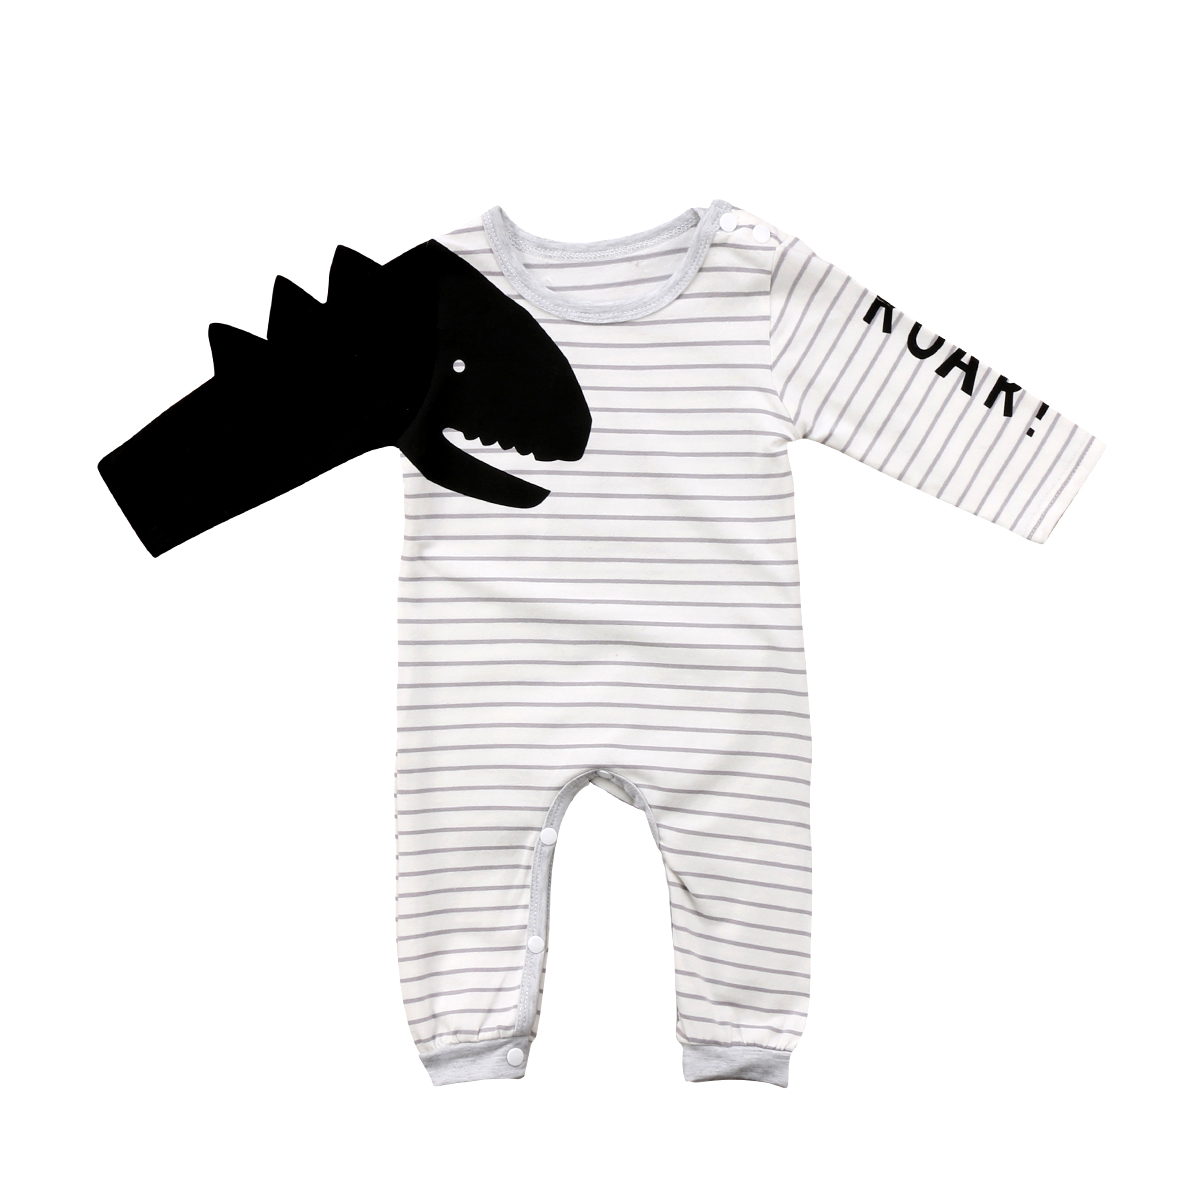 Cute Newborn Baby Boys Girls 3D Dinosaur Striped   Romper   Jumpsuit Letter Long Sleeves Cool Playsuit Infant Outfits Set Clothes